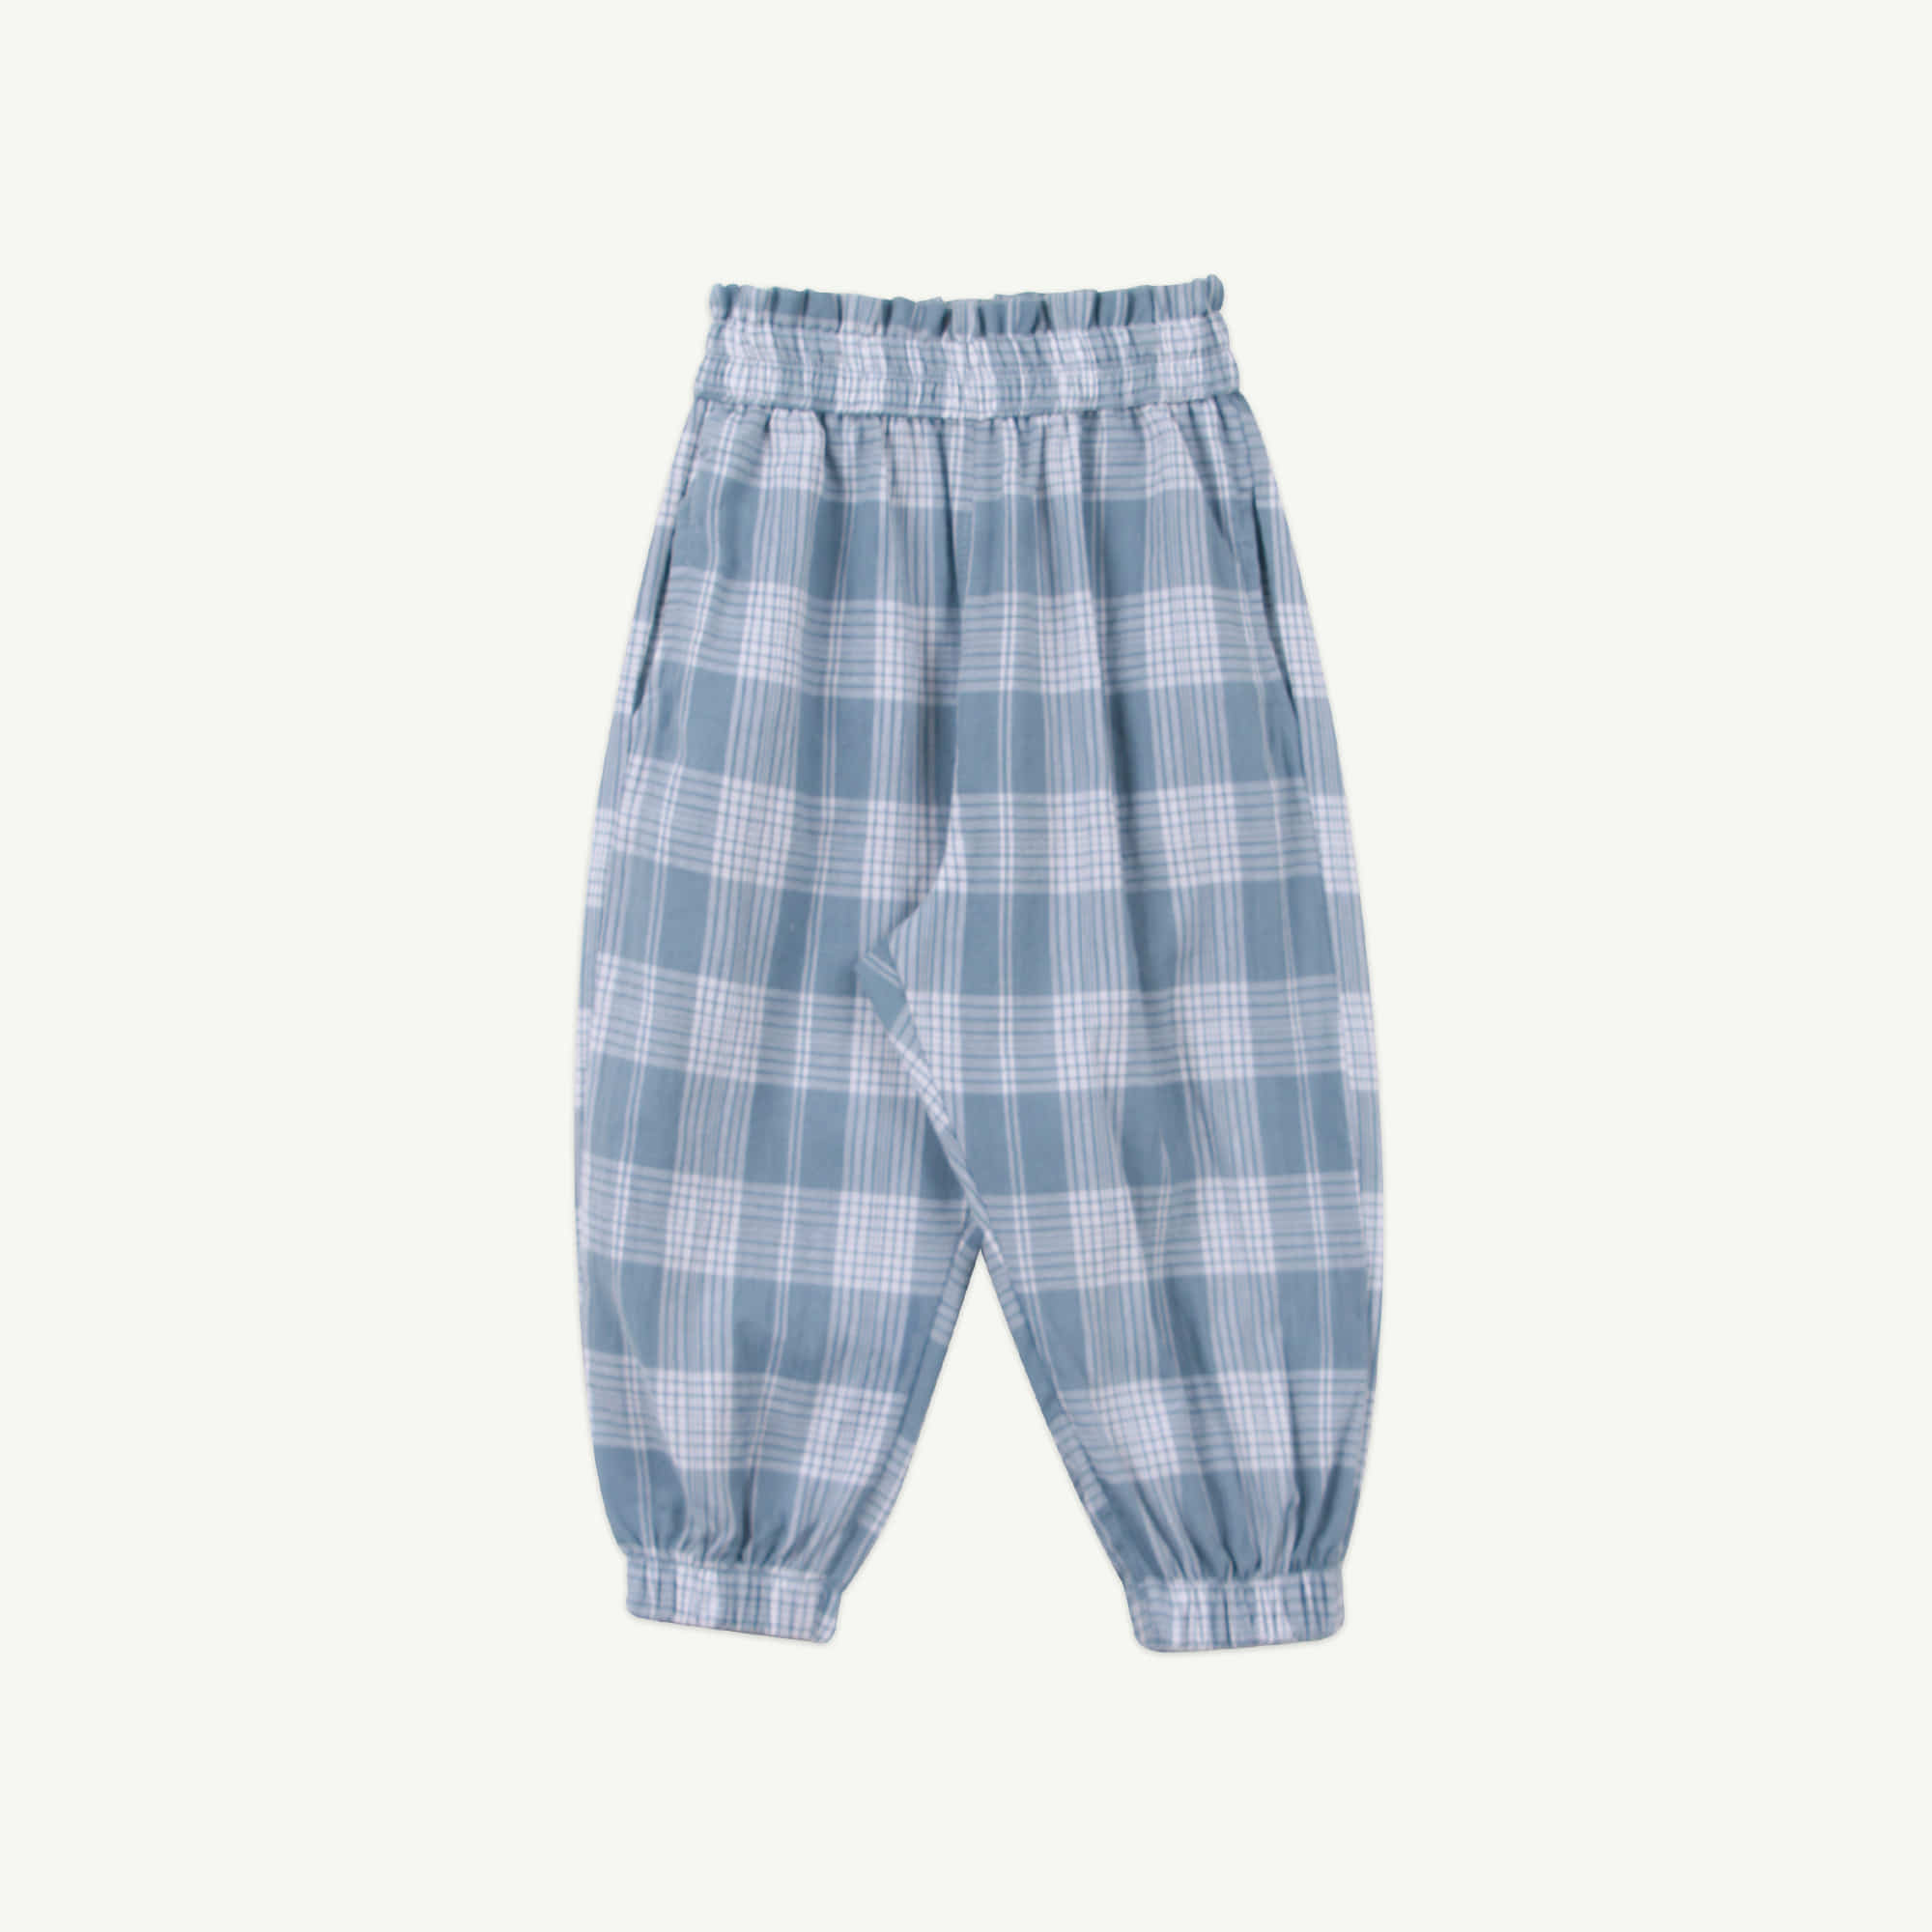 21 S/S Frill check jogger(6차 입고, 당일 발송)